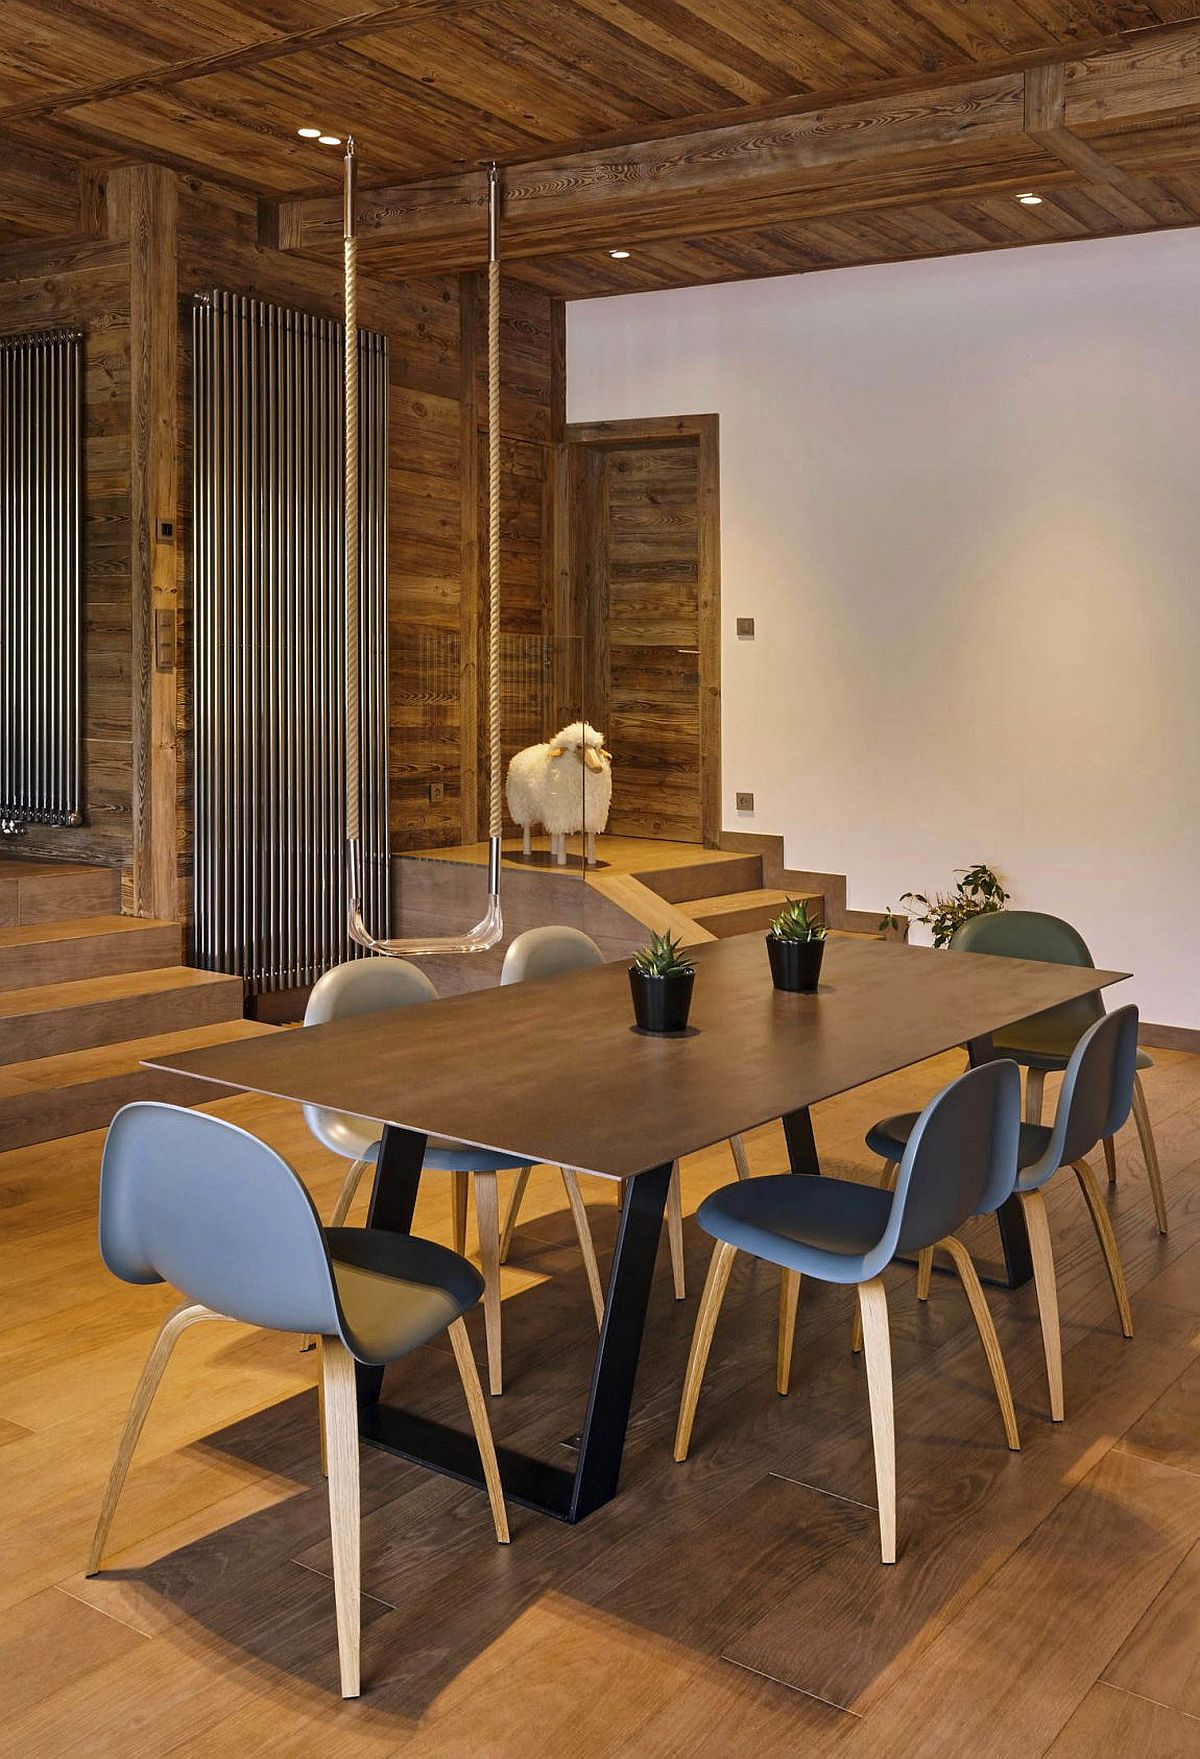 Ceiling clad in wood adds beauty to the dining room